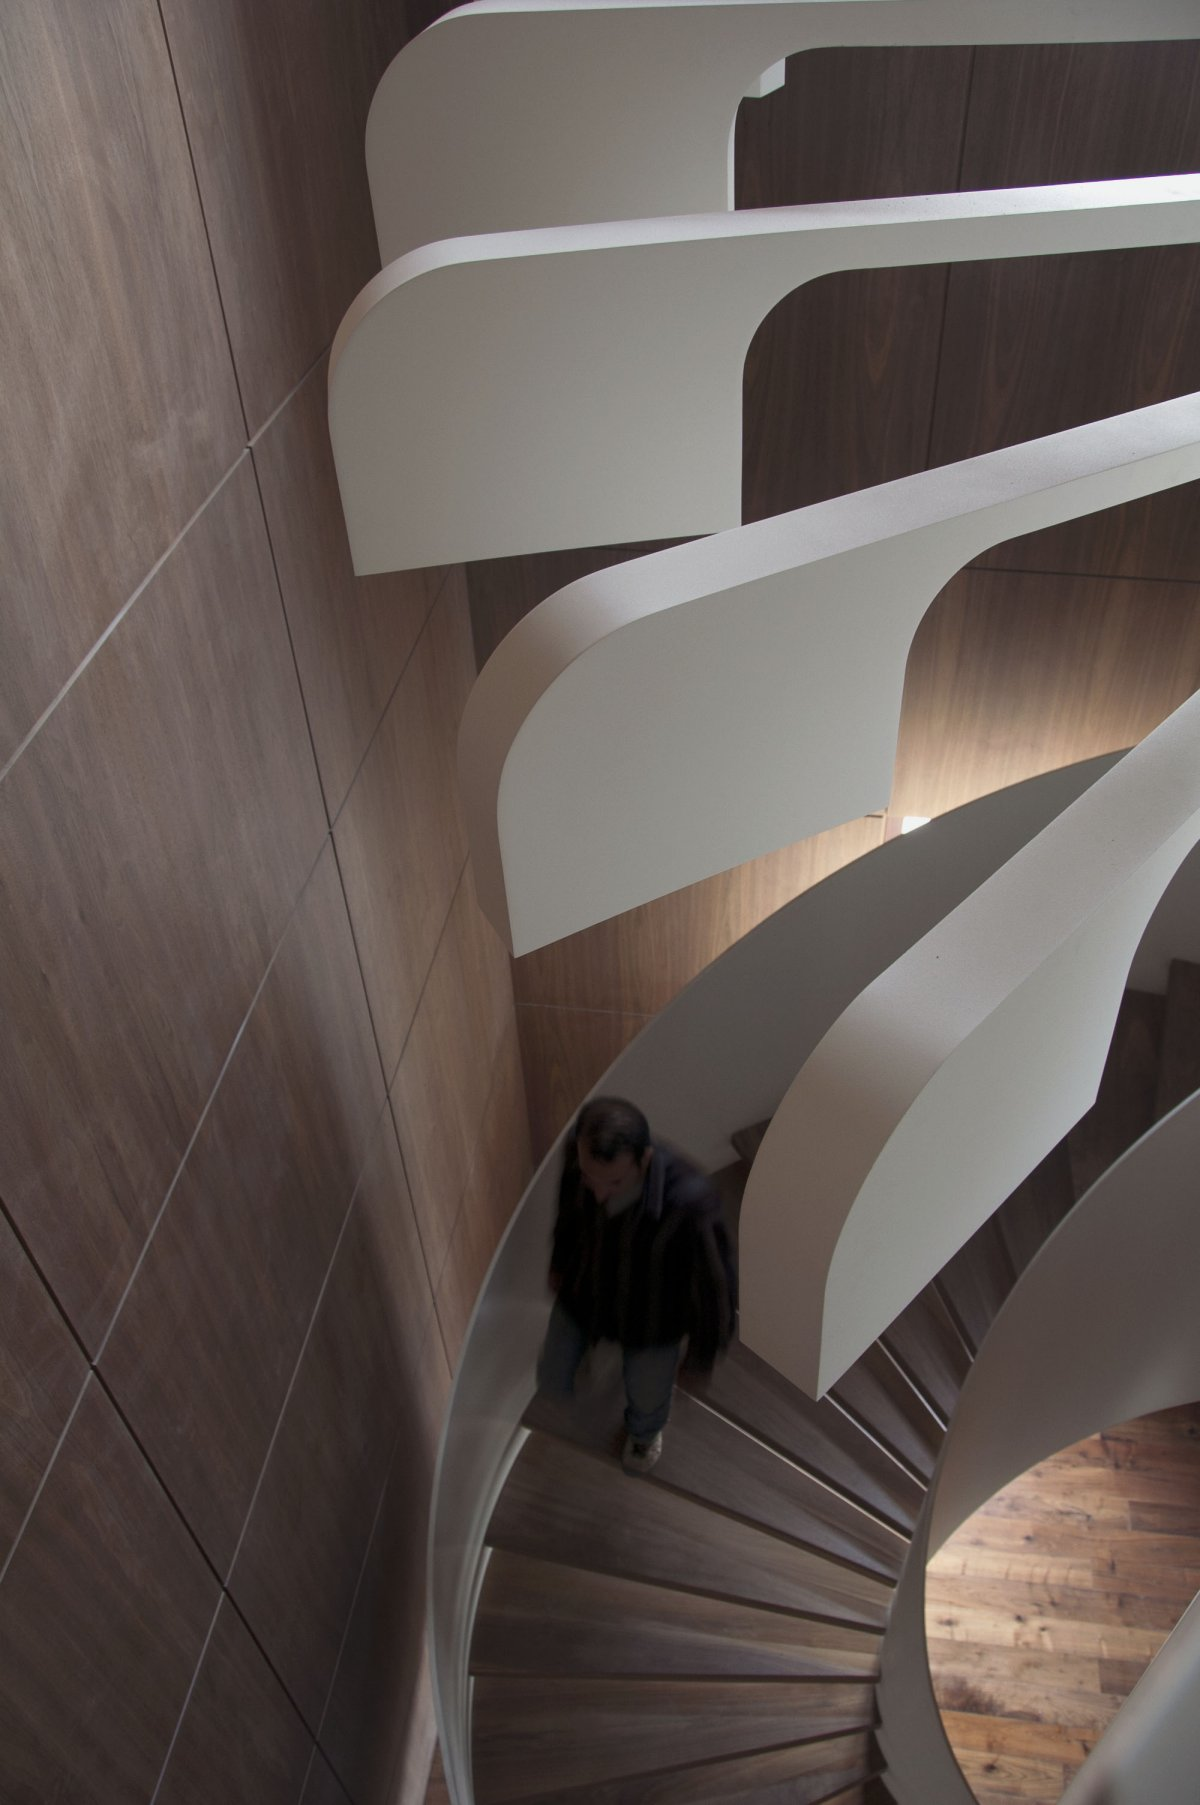 spiral staircase lighting. The Constraints Encountered Came Not From Space But Lighting Fixture Itself Which Required Special Handling To Turn A Concept Into Reality. Spiral Staircase